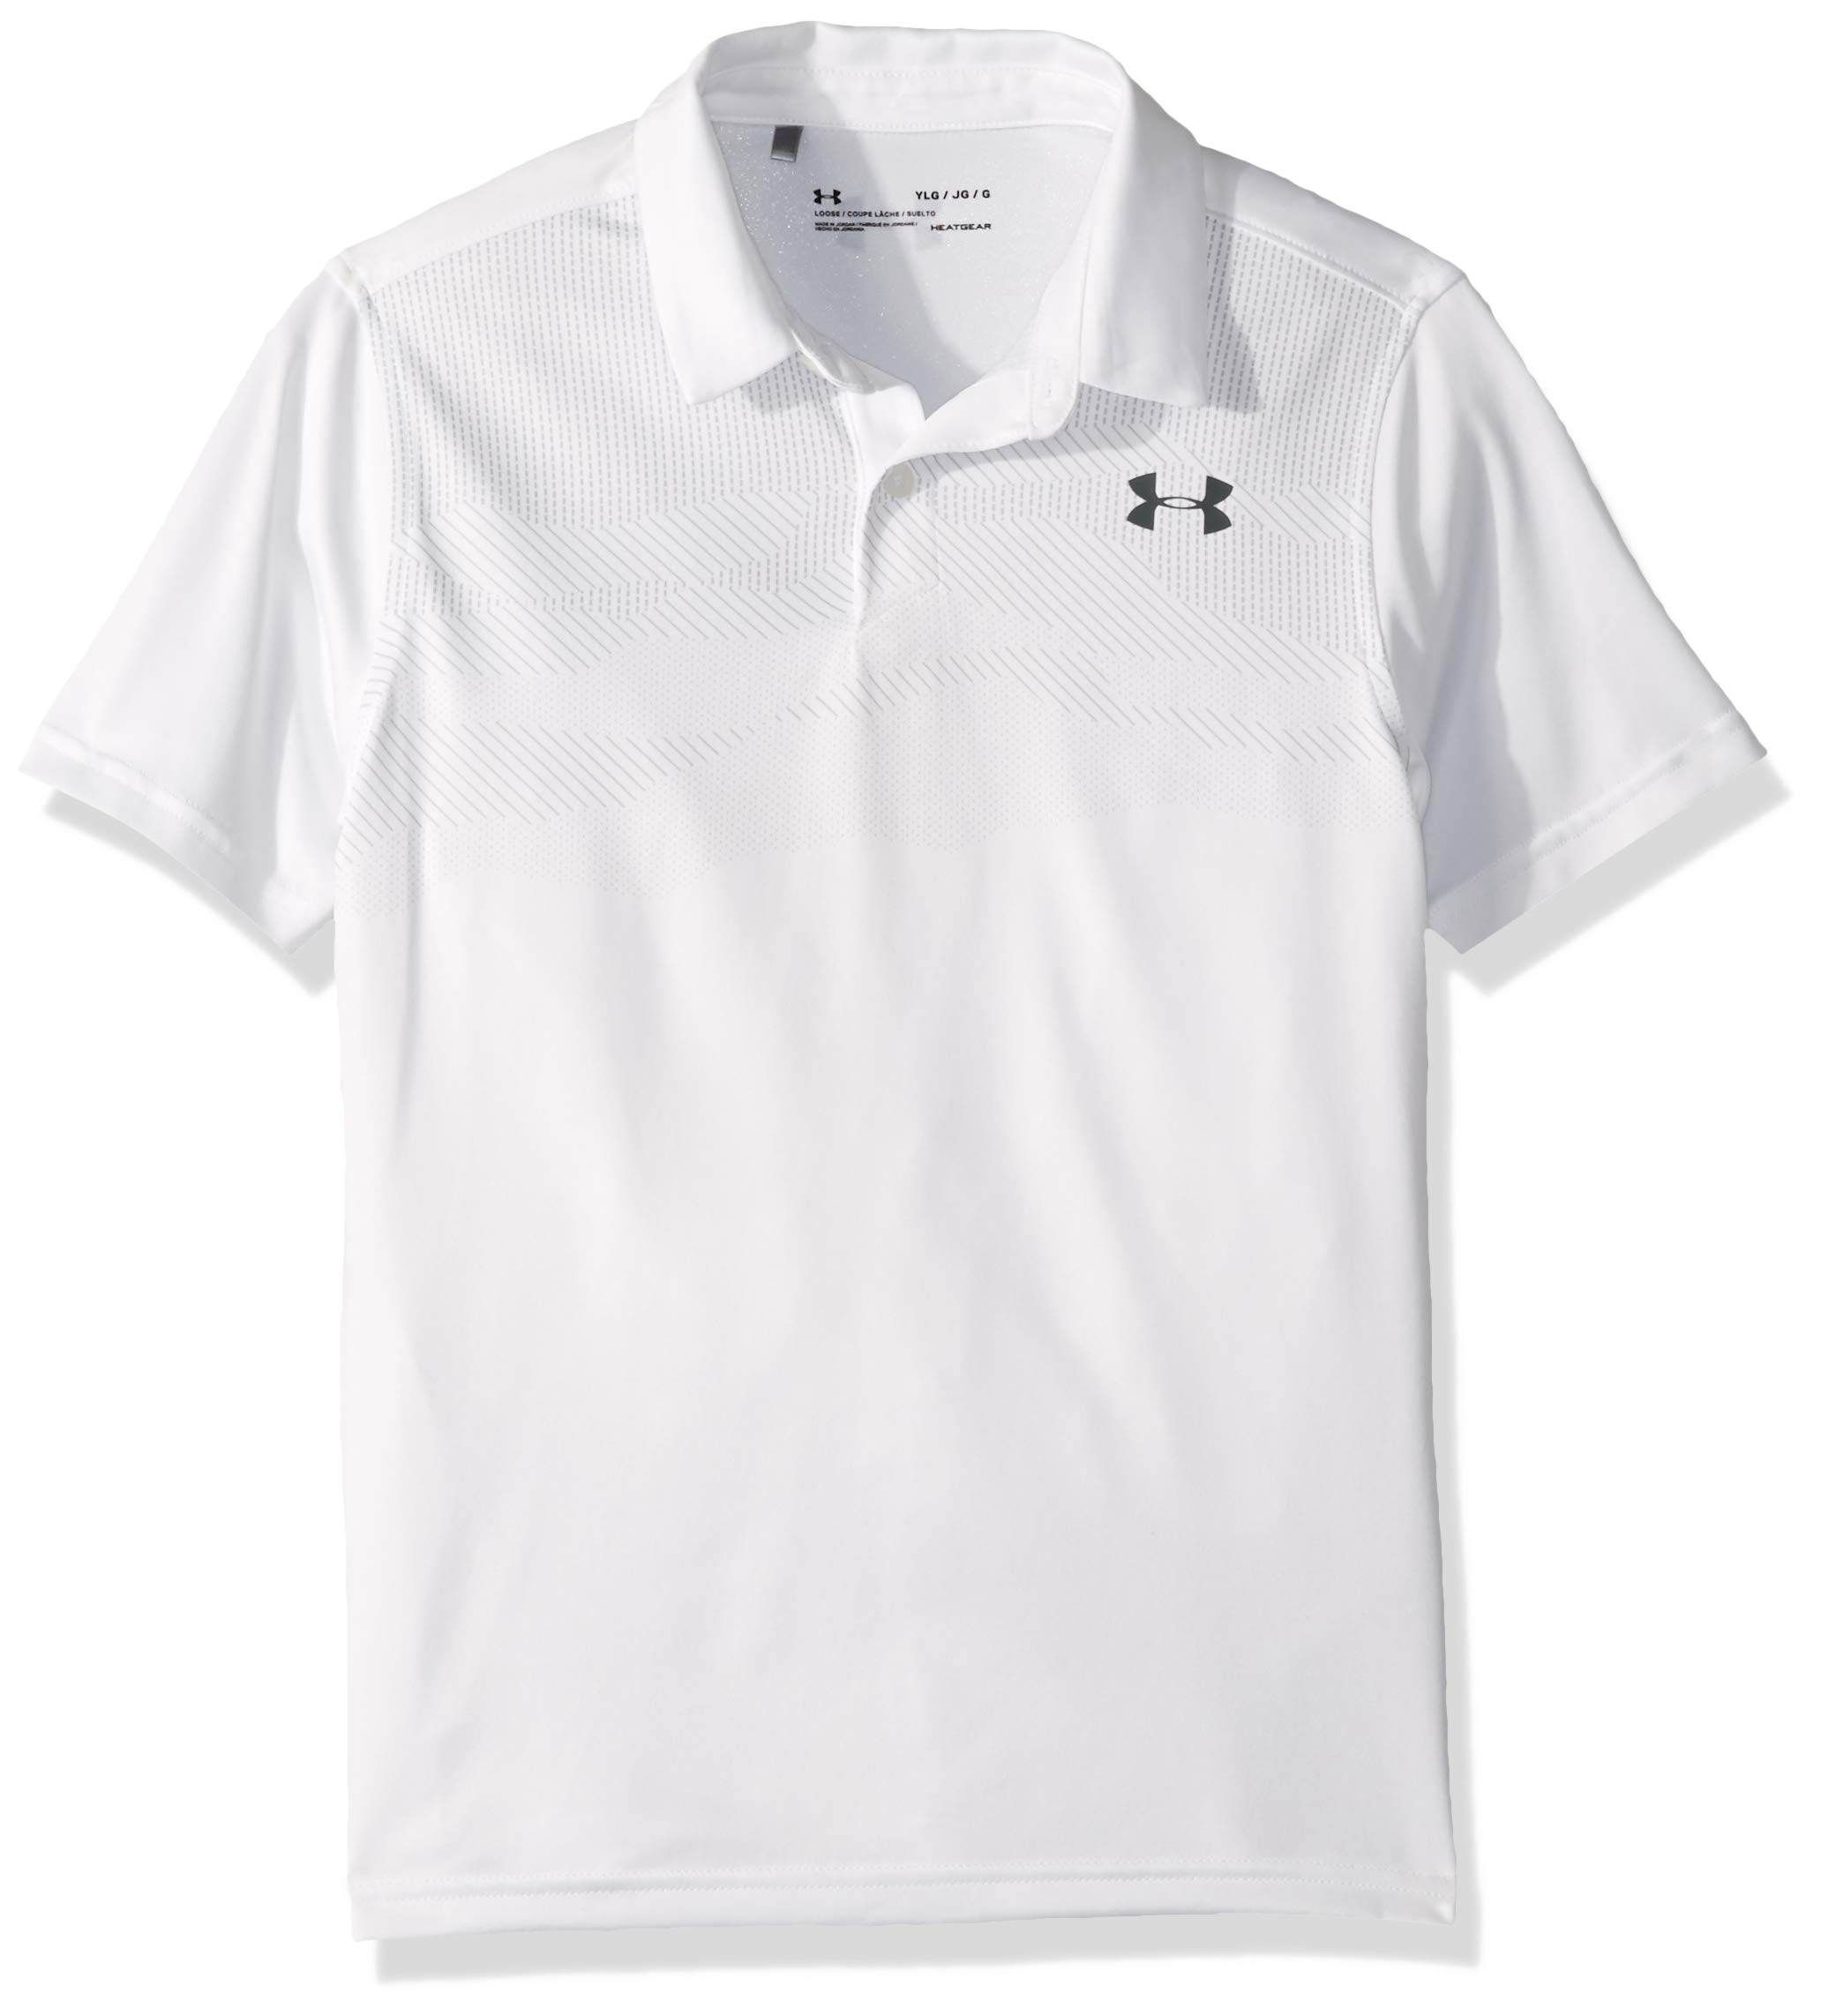 Under Armour Tour Tips Engineered Polo, White//Pitch Gray, Youth X-Small